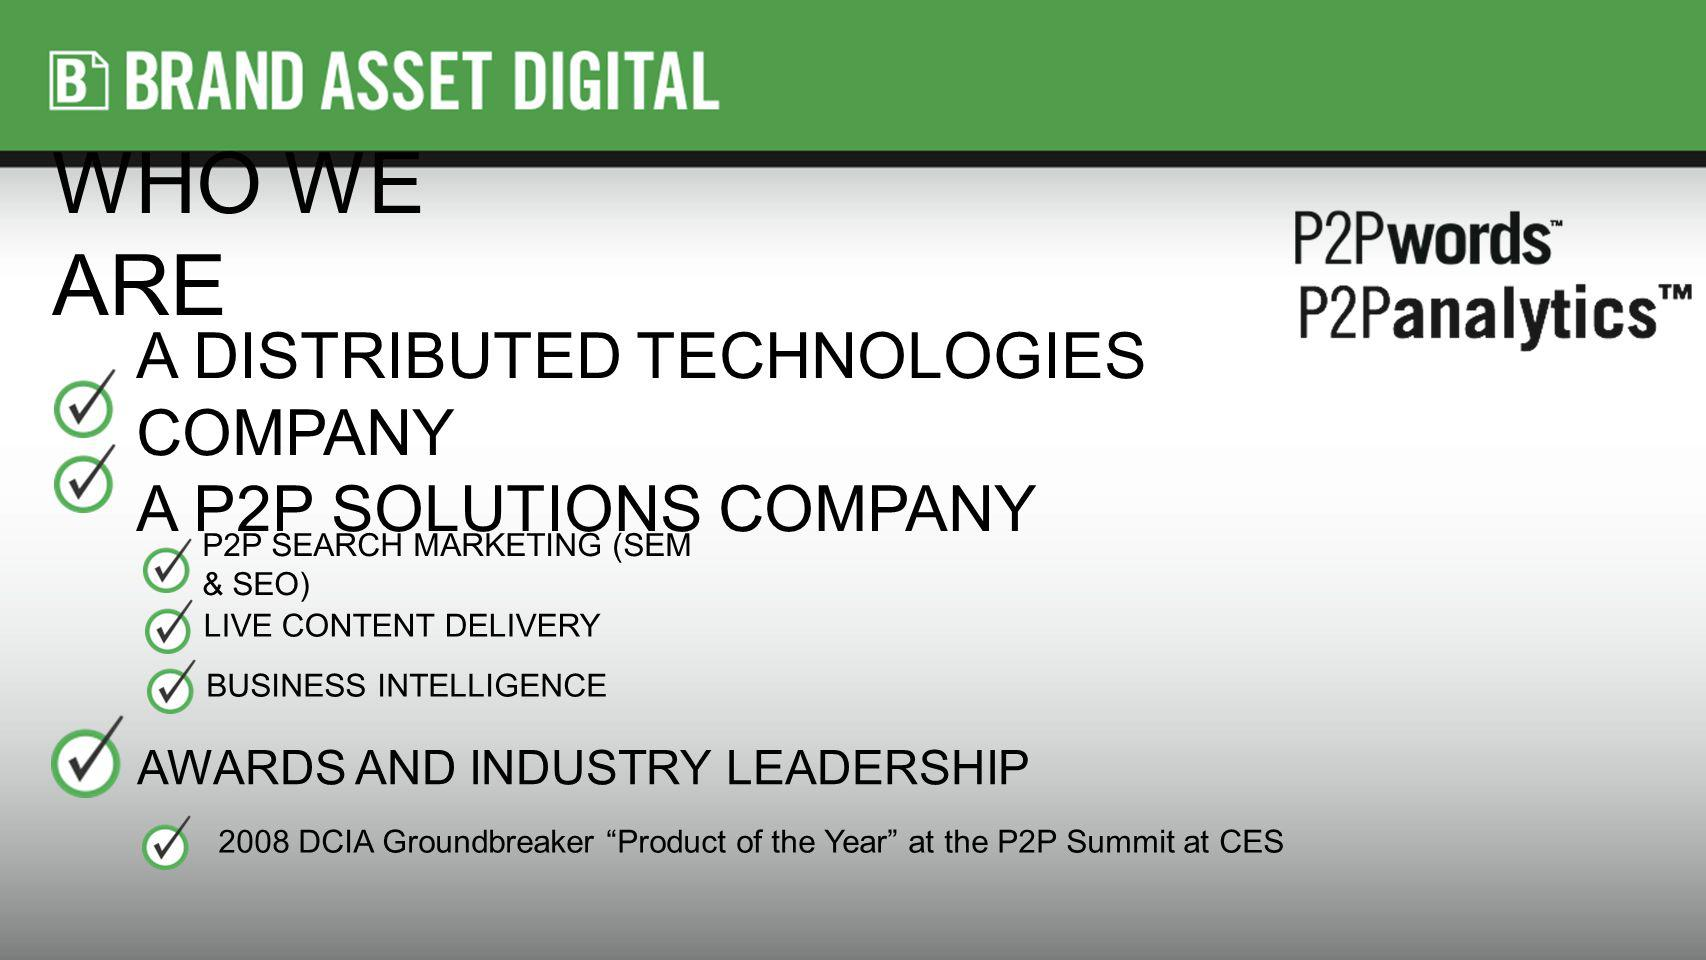 A DISTRIBUTED TECHNOLOGIES COMPANY A P2P SOLUTIONS COMPANY P2P SEARCH MARKETING (SEM & SEO) AWARDS AND INDUSTRY LEADERSHIP 2008 DCIA Groundbreaker Product of the Year at the P2P Summit at CES LIVE CONTENT DELIVERY BUSINESS INTELLIGENCE WHO WE ARE